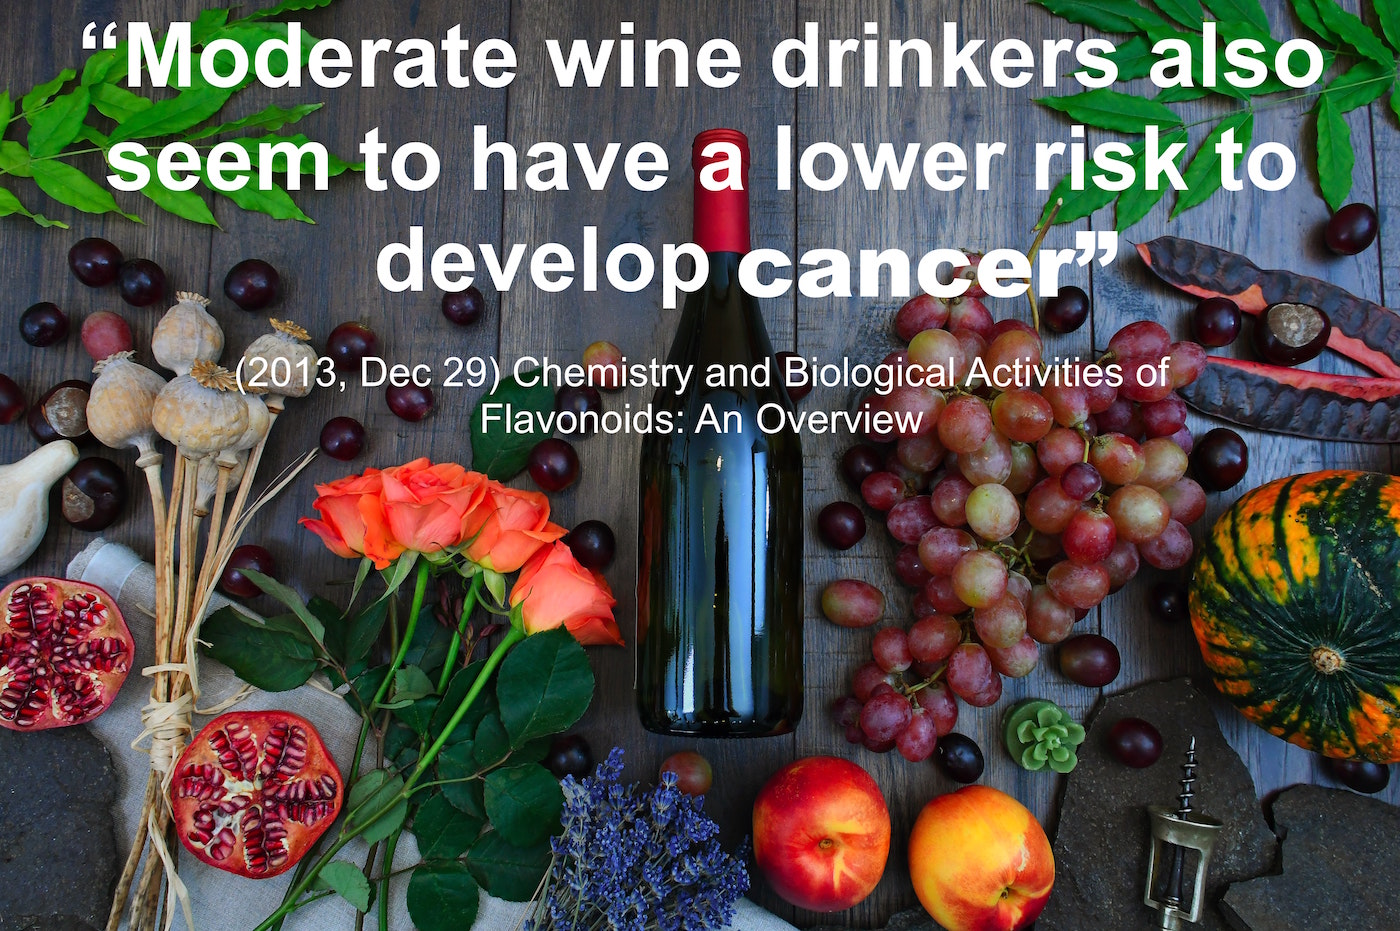 wine reduces risk of cancer